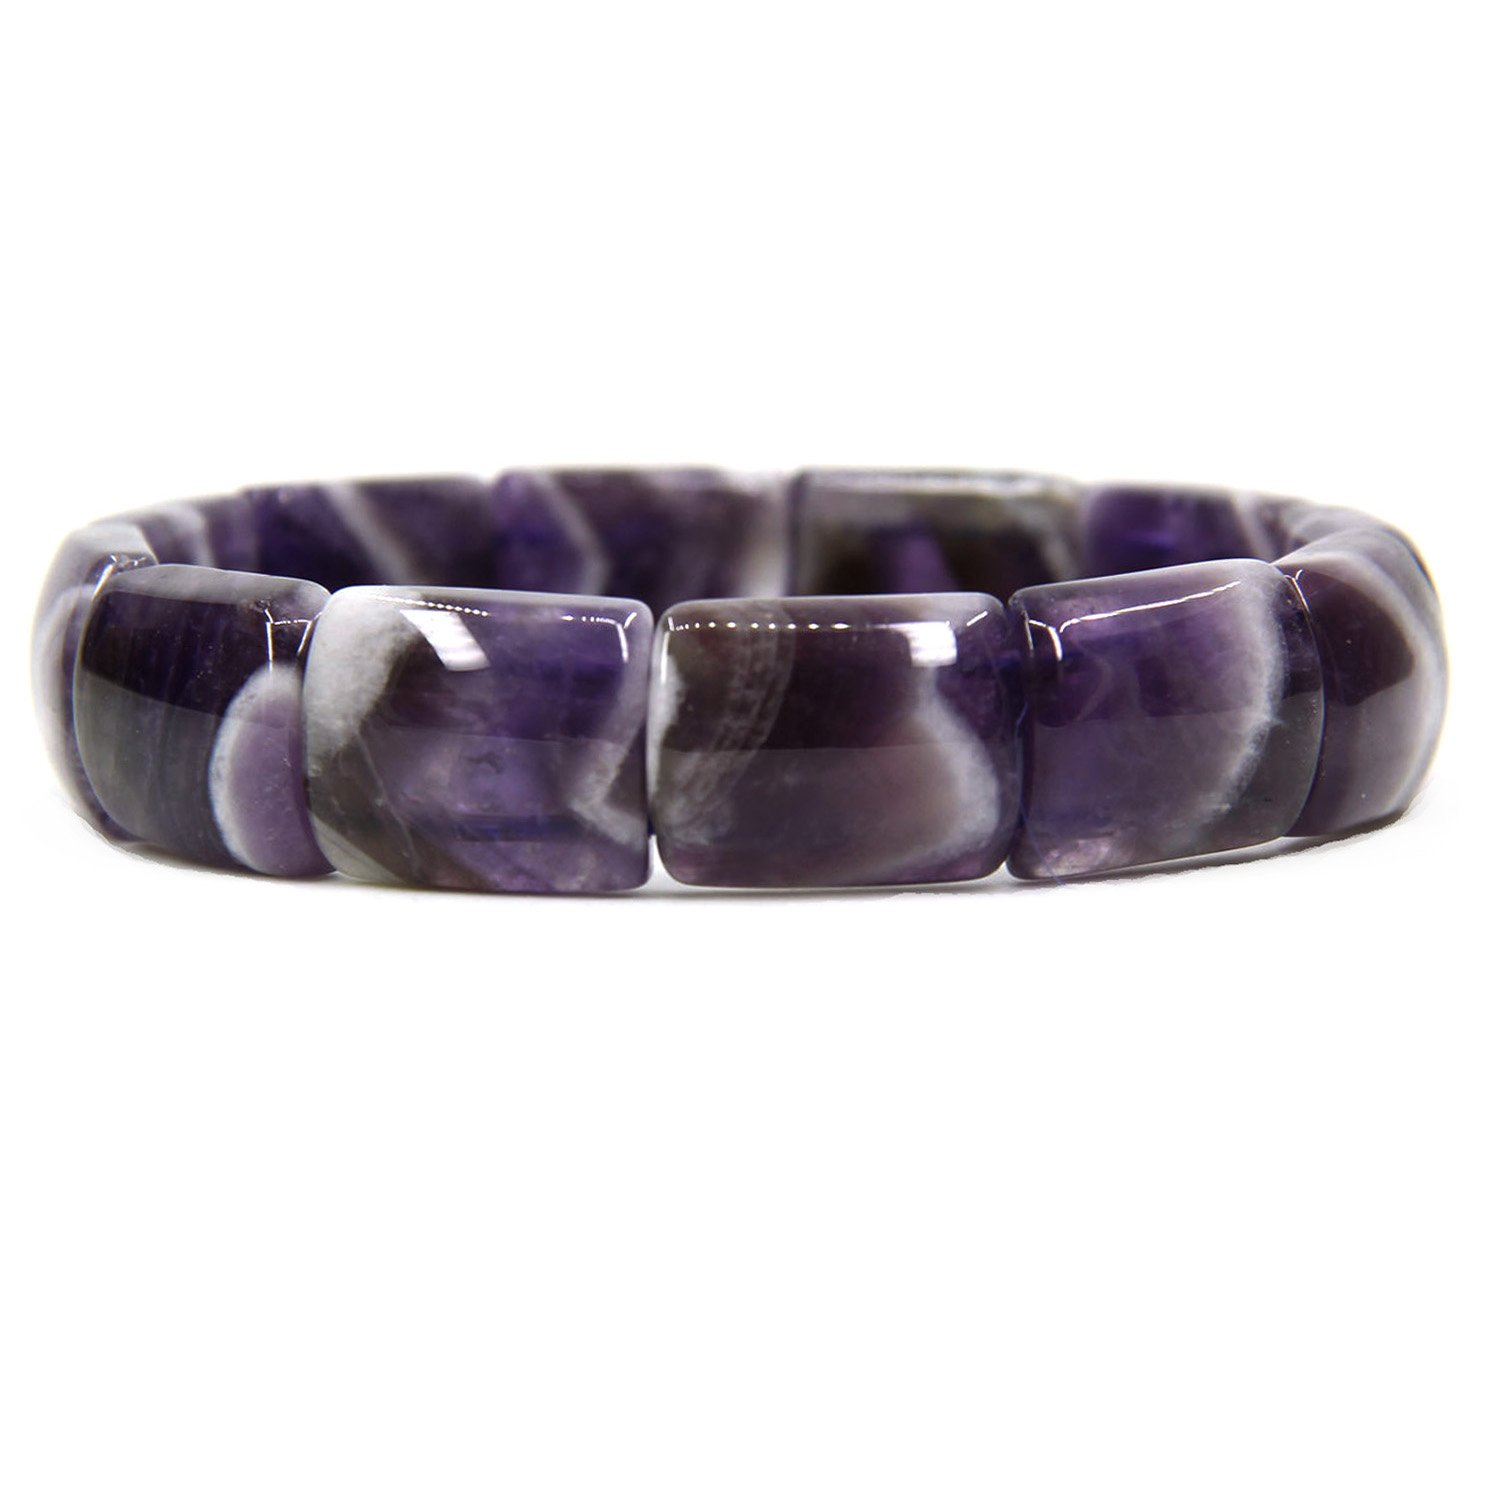 Amandastone Genuine Semi Precious Gemstone 15mm Square Grain Faceted Beaded Stretchable Bracelet 7